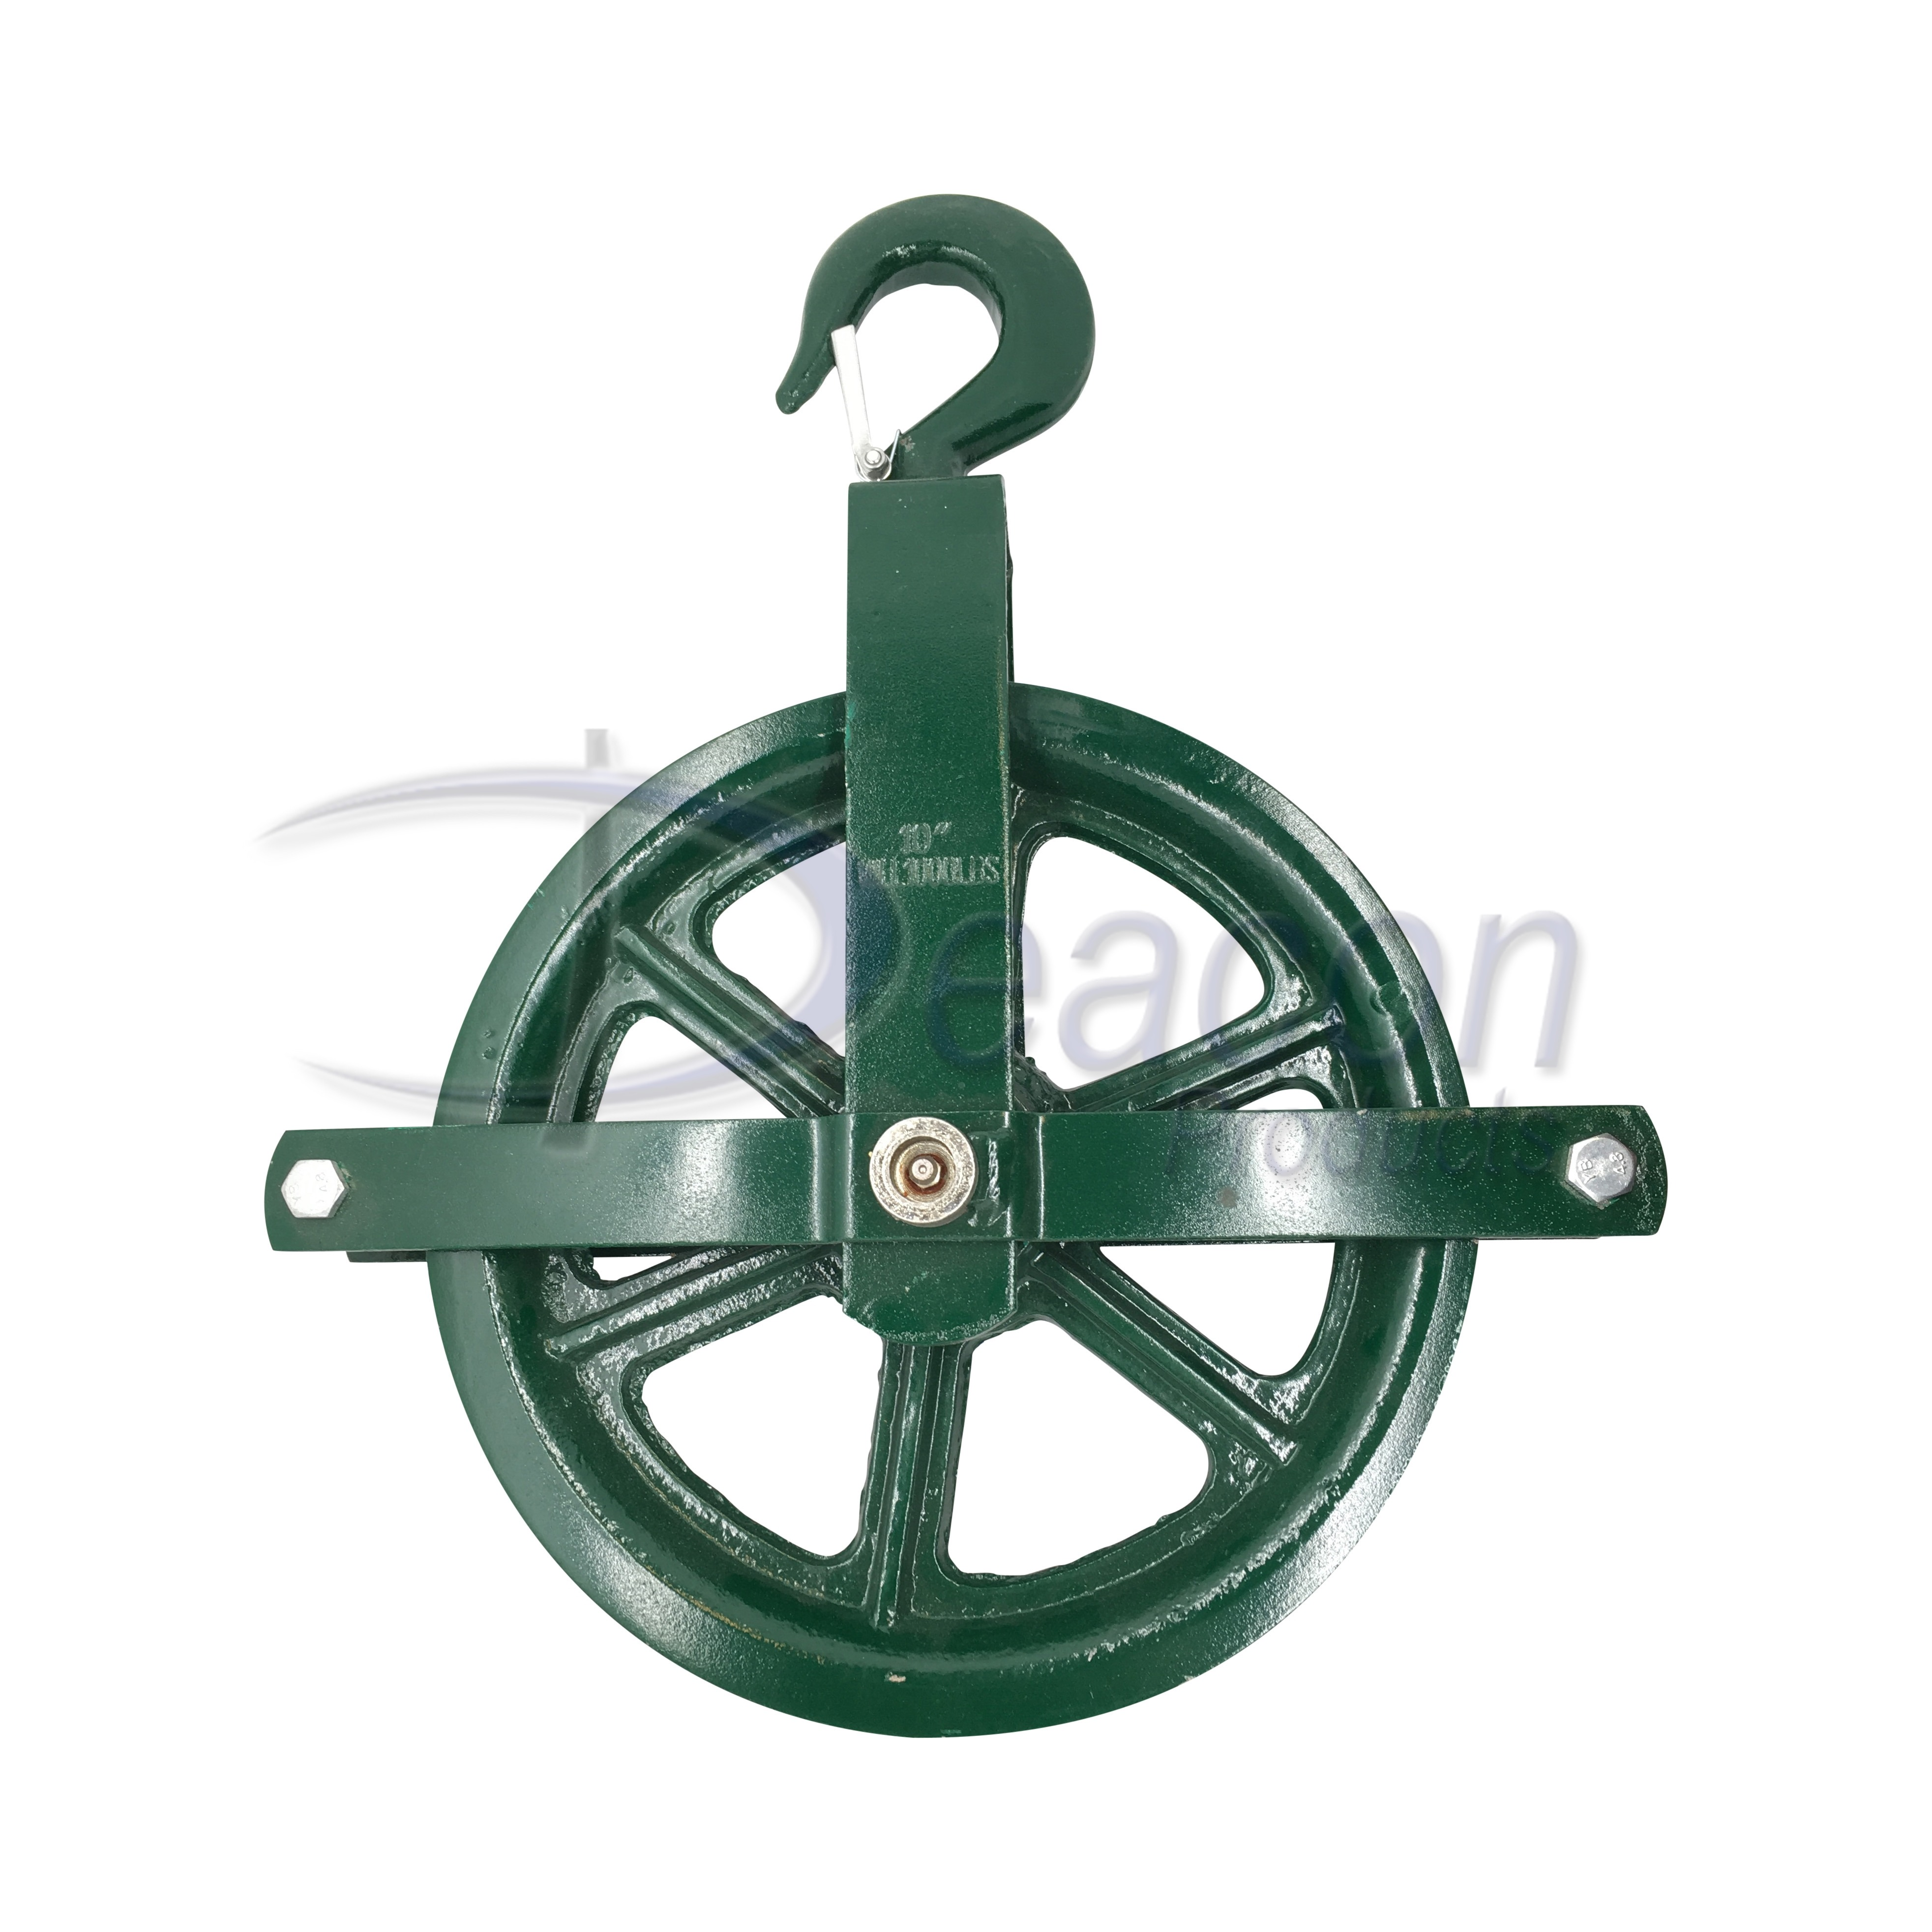 gin-pulley-block